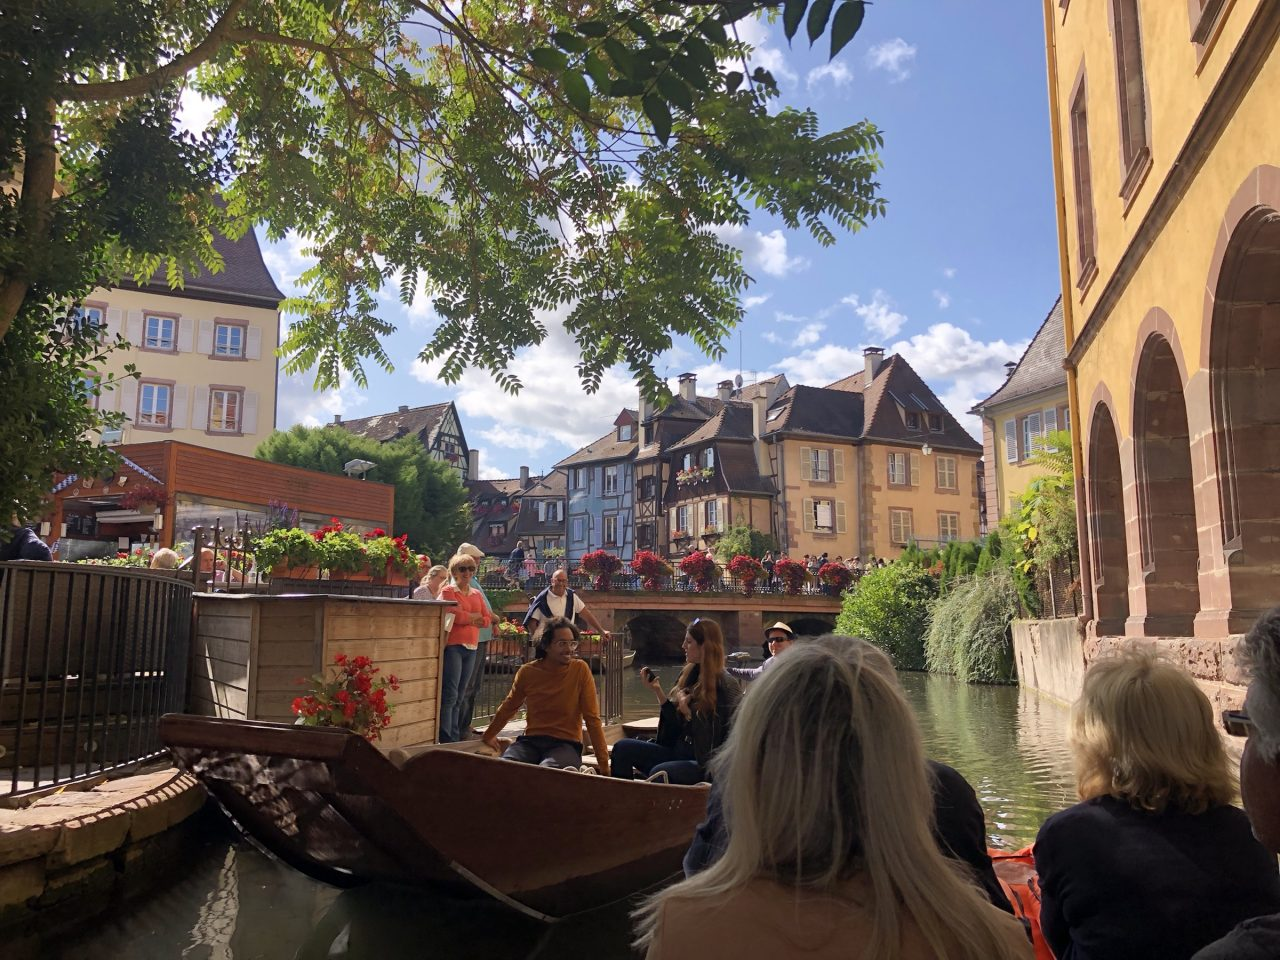 Old town Colmar, France. boat ride